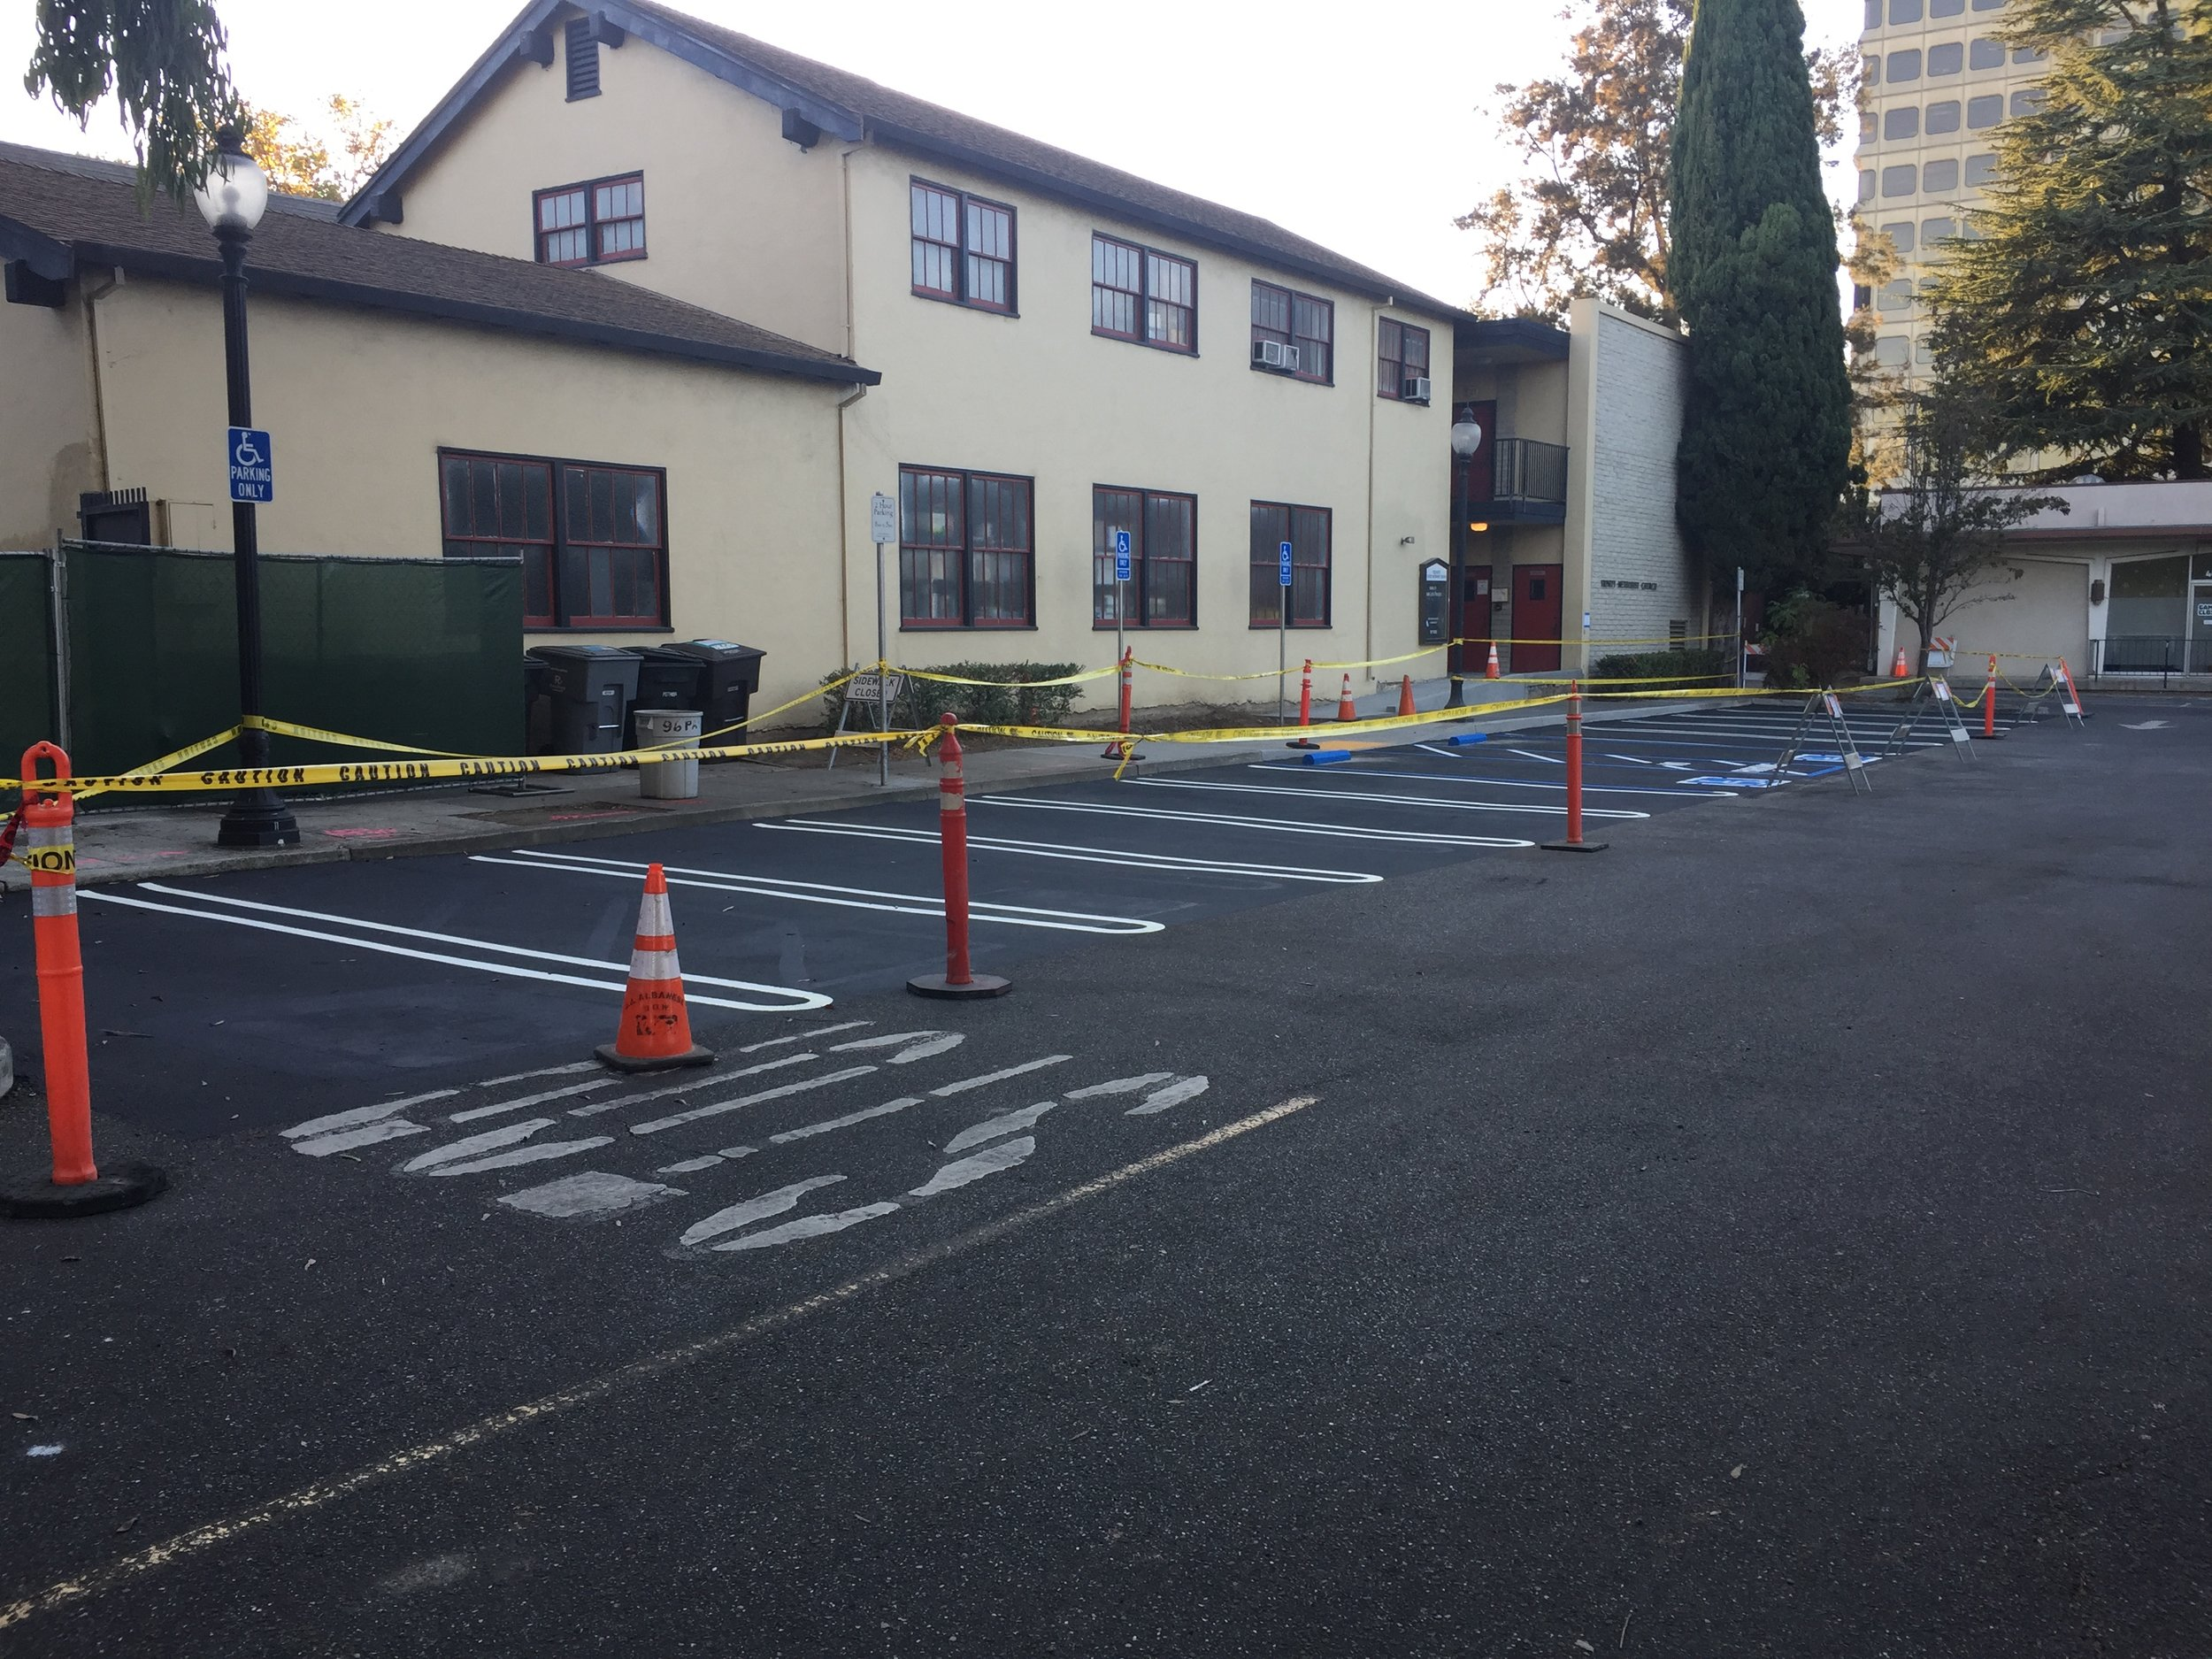 2018-10-15 Parking lot restriping